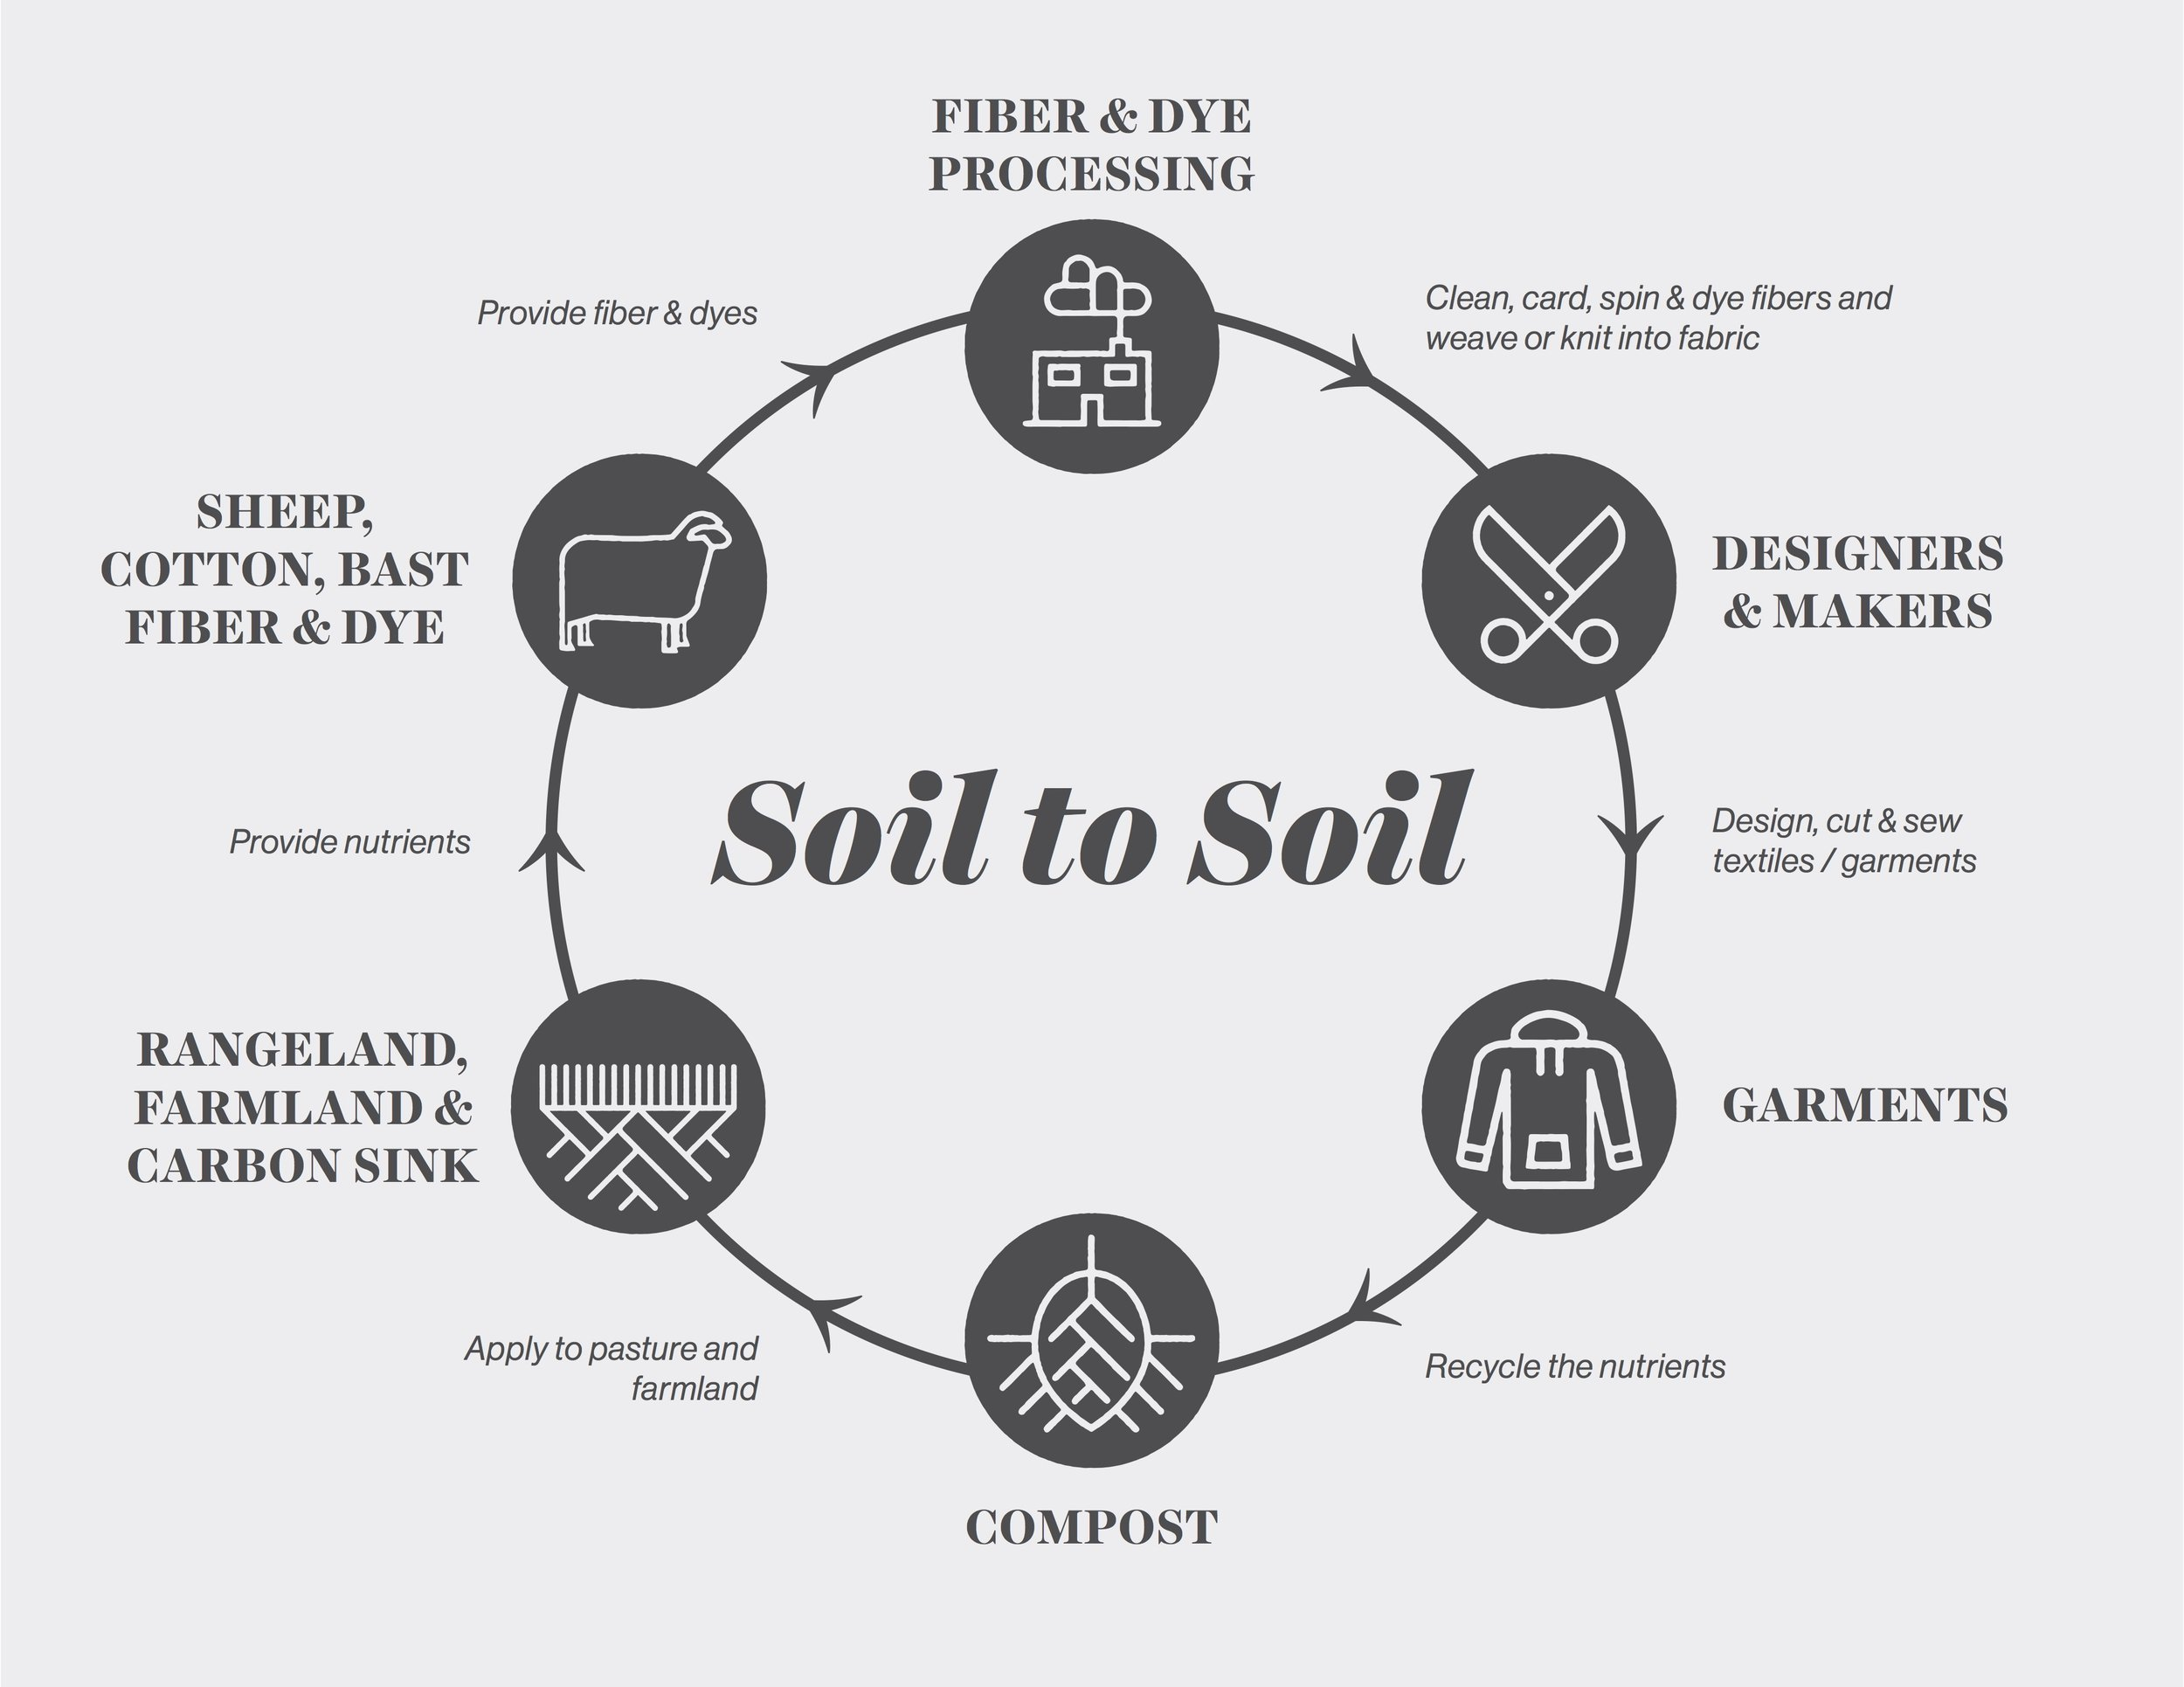 Soil to Soil Image: http://www.fibershed.com/about/